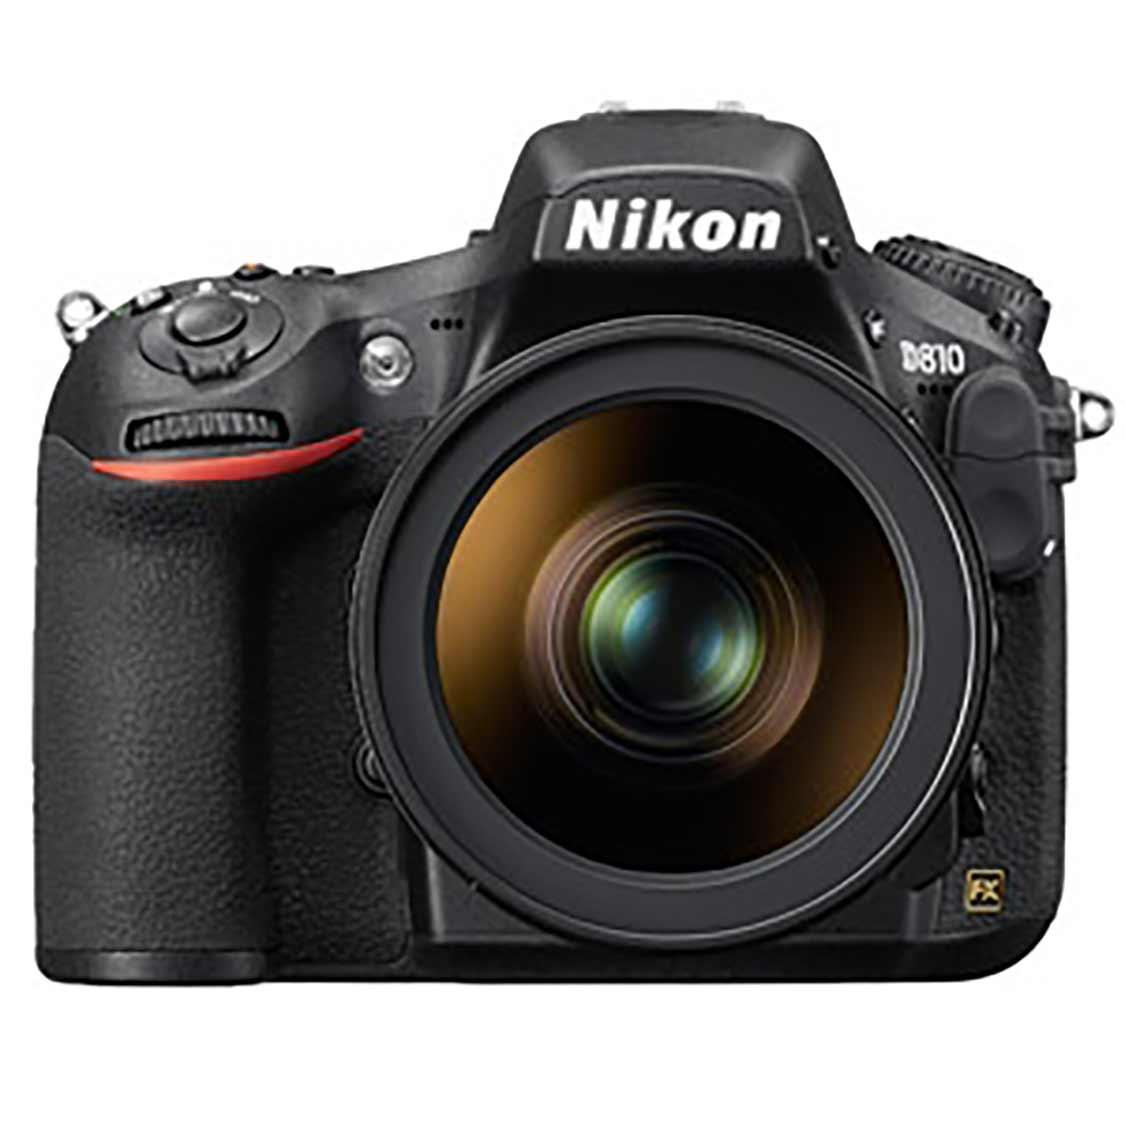 Nikon D810 DSLR with AF-S 24-120mm Lens